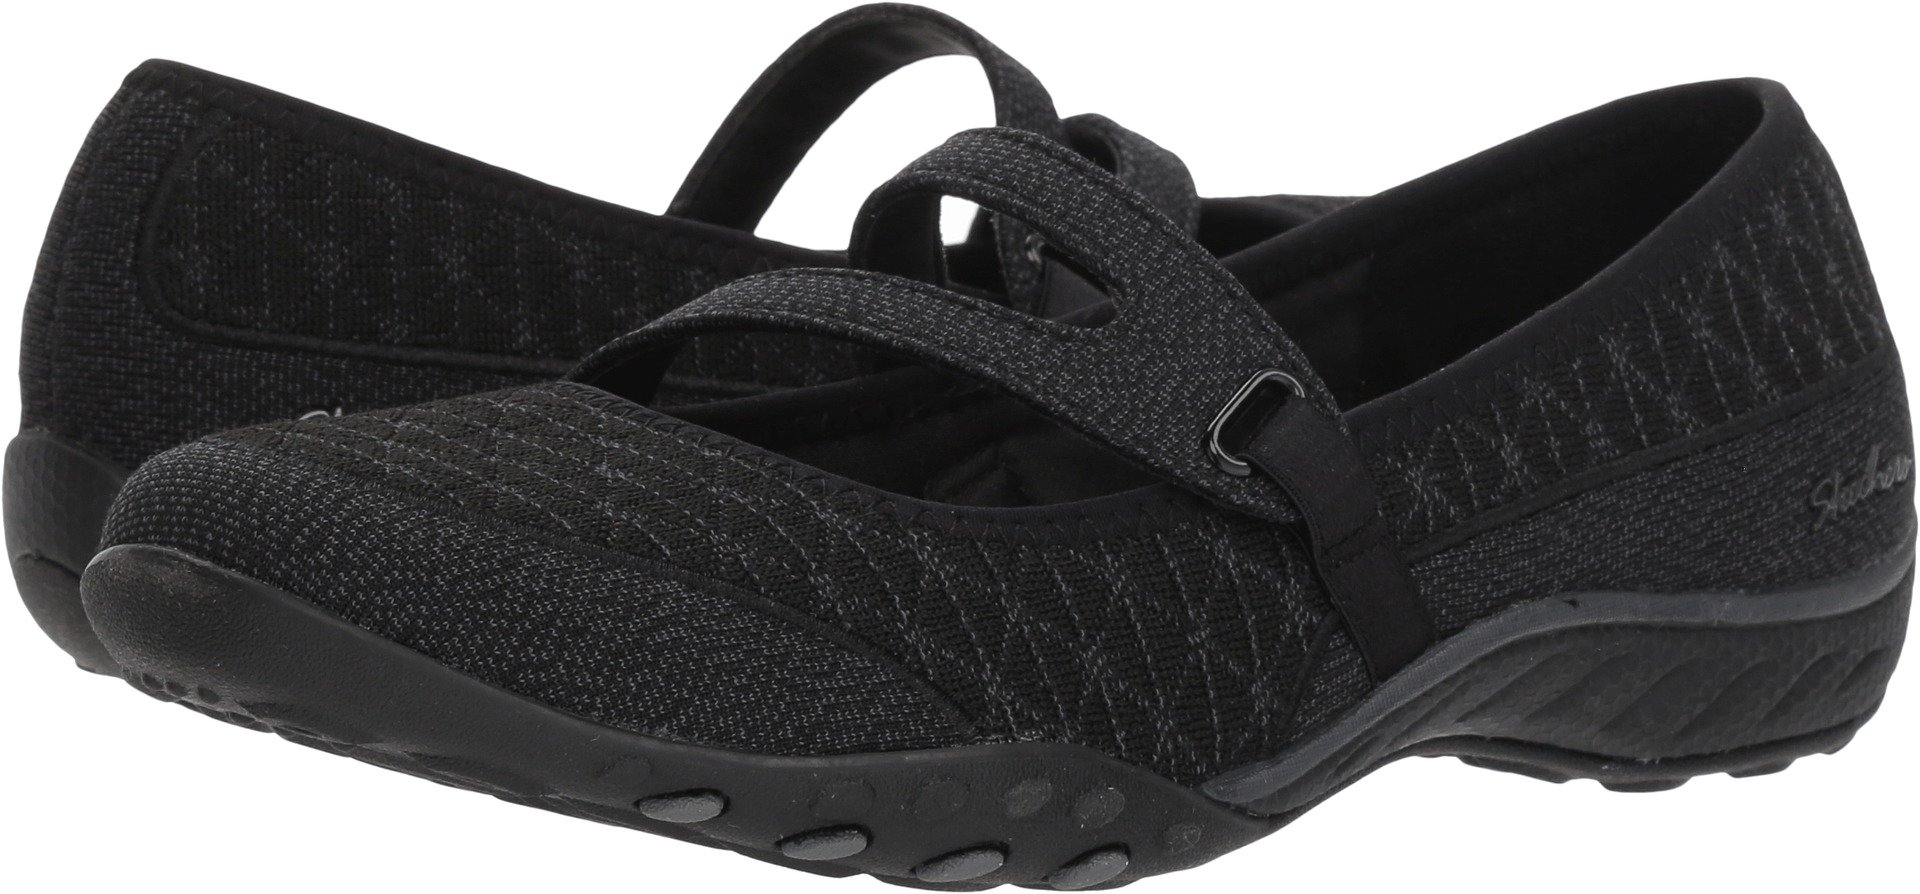 Skechers Relaxed Fit Breathe Easy Boss Lady Womens Mary Jane Sneakers Black 8.5